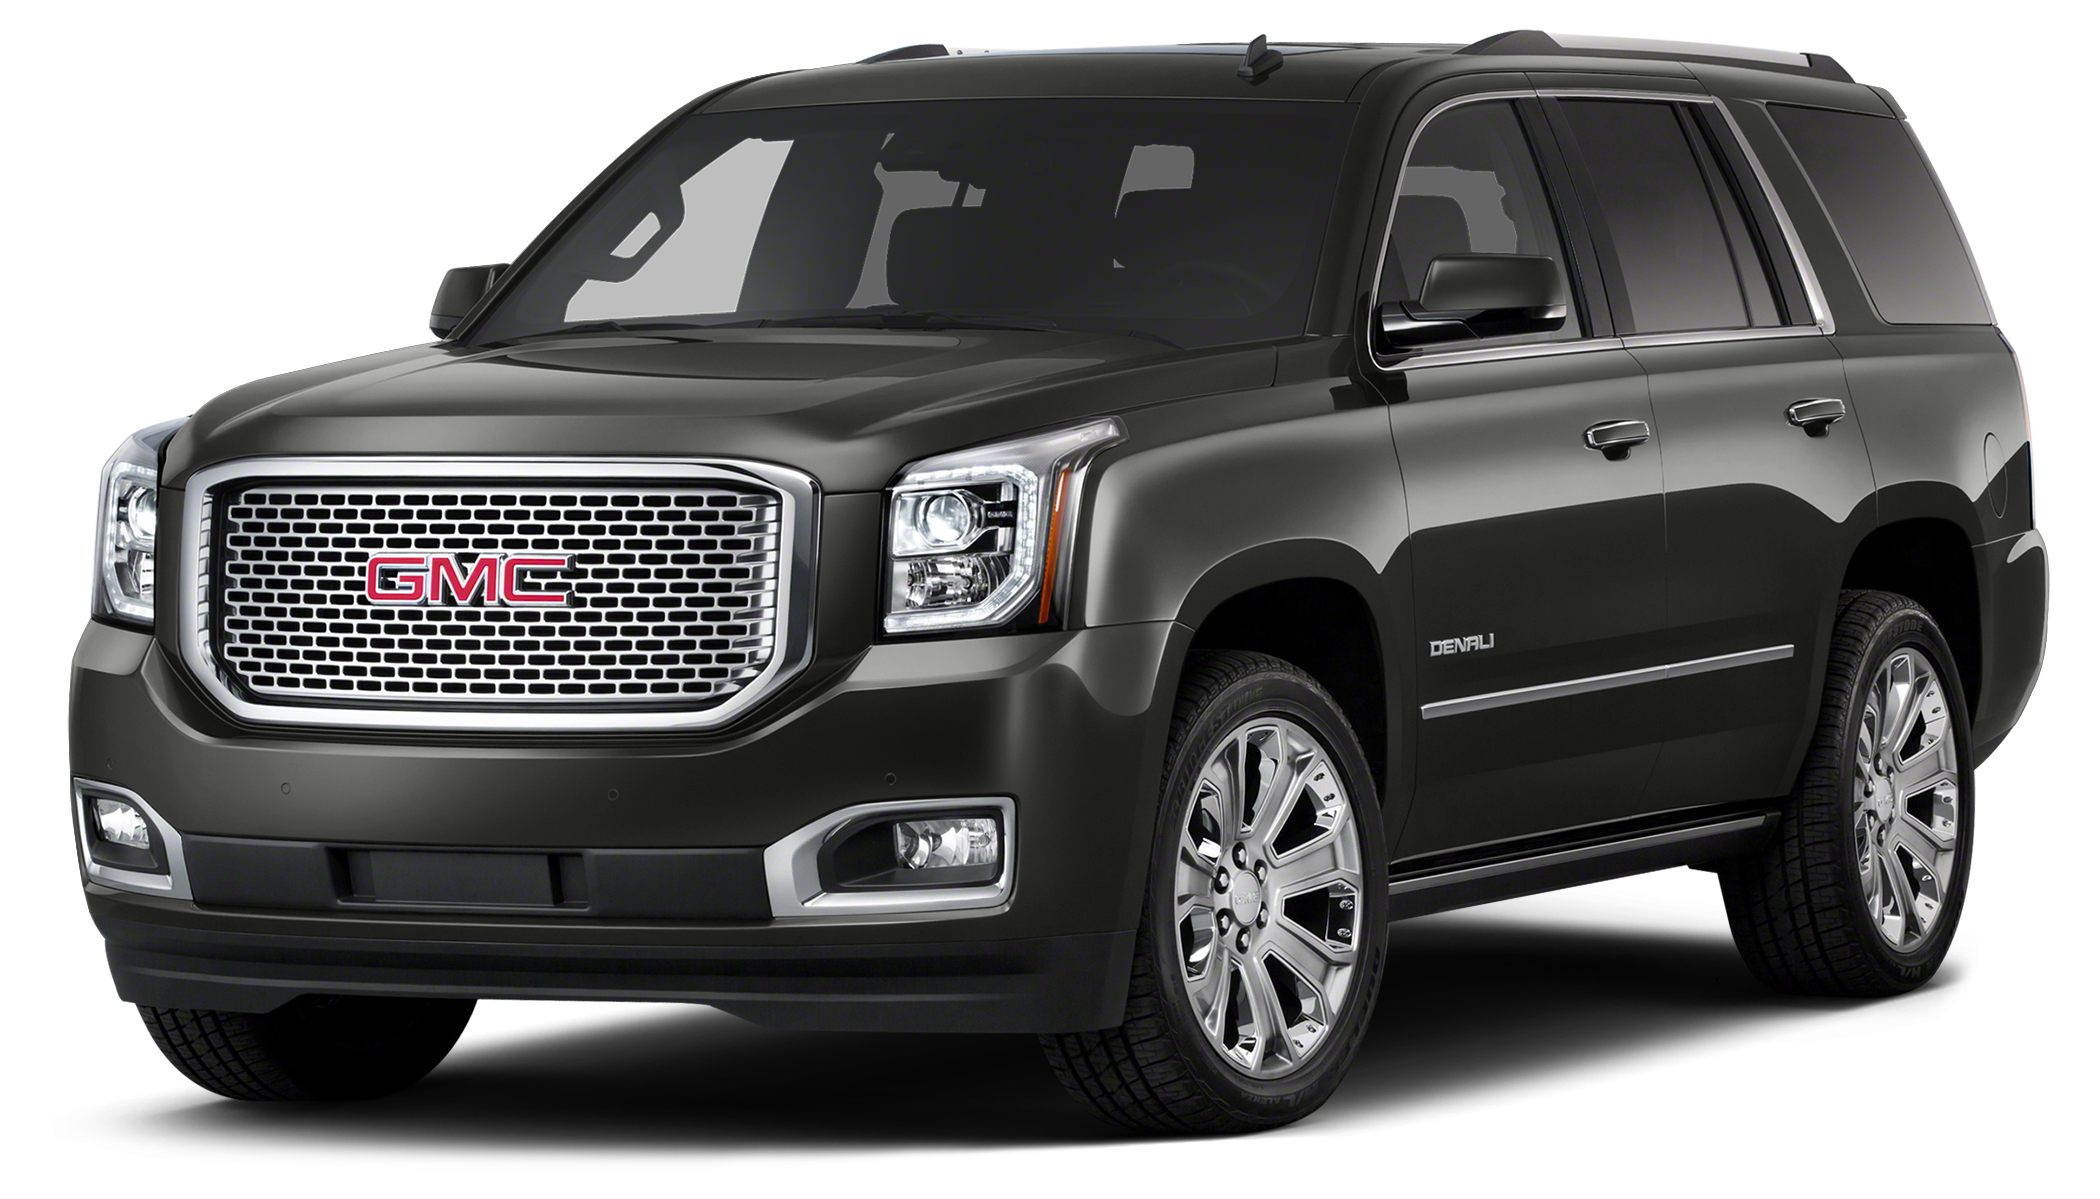 2016 GMC Yukon Denali In this 2016 GMC Yukon Denali enjoy every drive with prime features like an